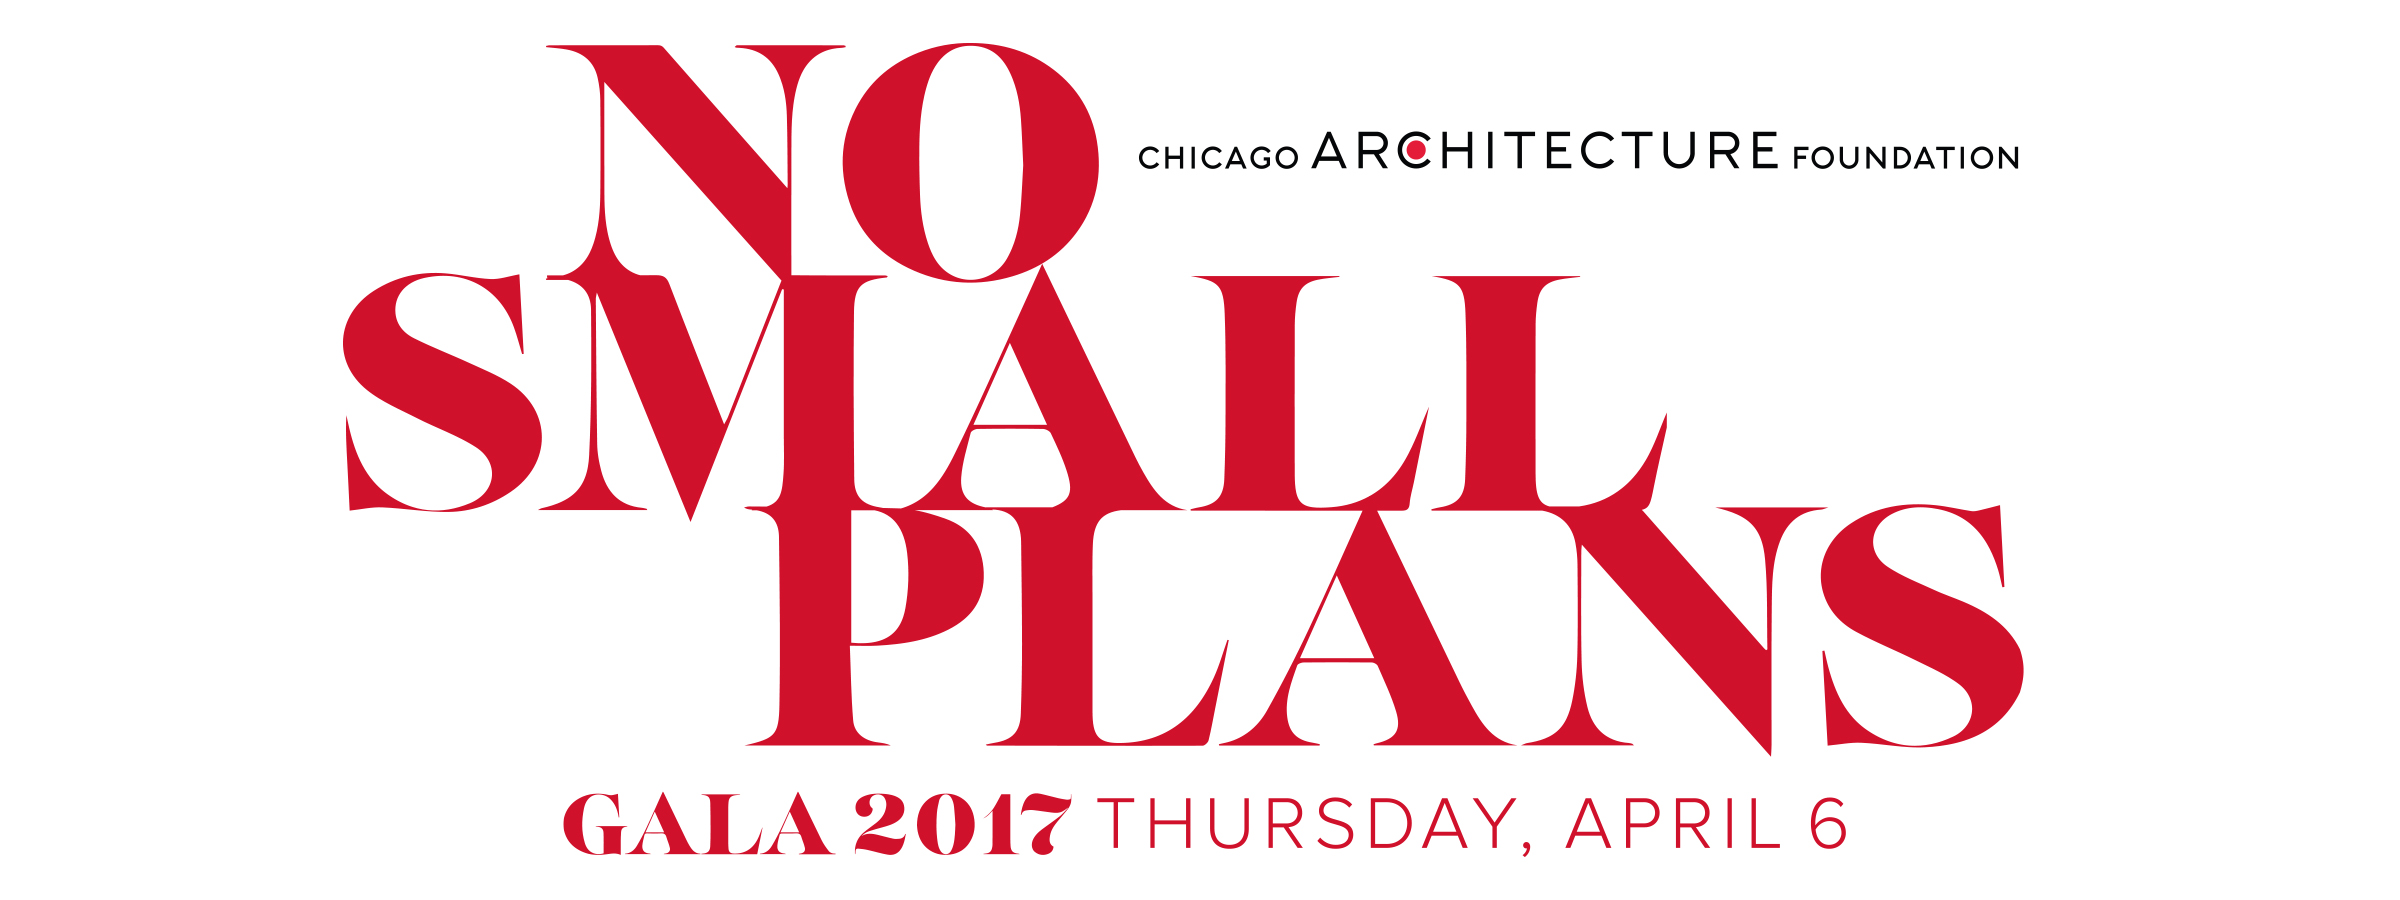 Chicago Architecture Foundation Logo Design Home Design